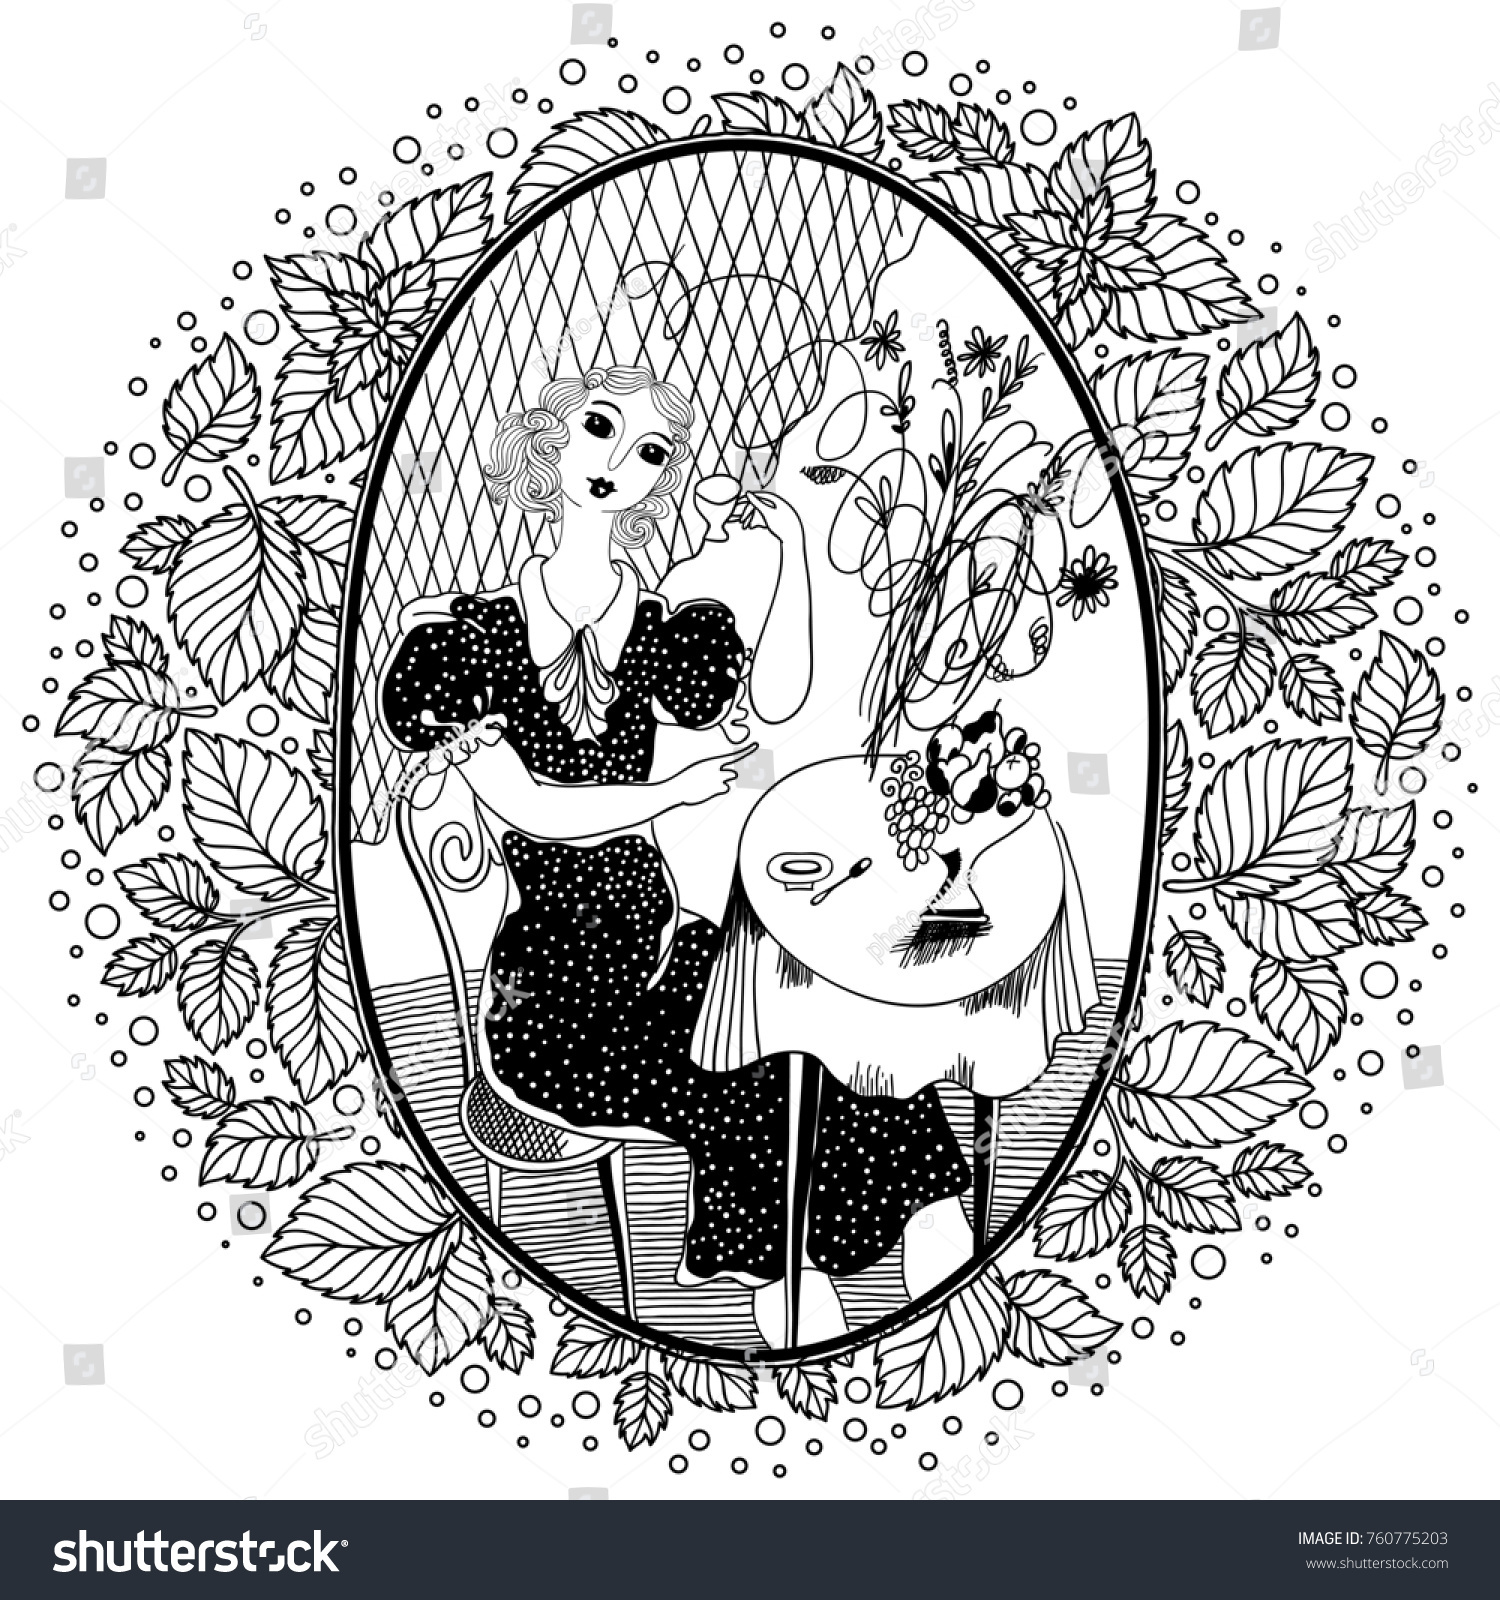 Pattern For Coloring Book Adult Vintage Girl Drinking Coffee In A Cafe The